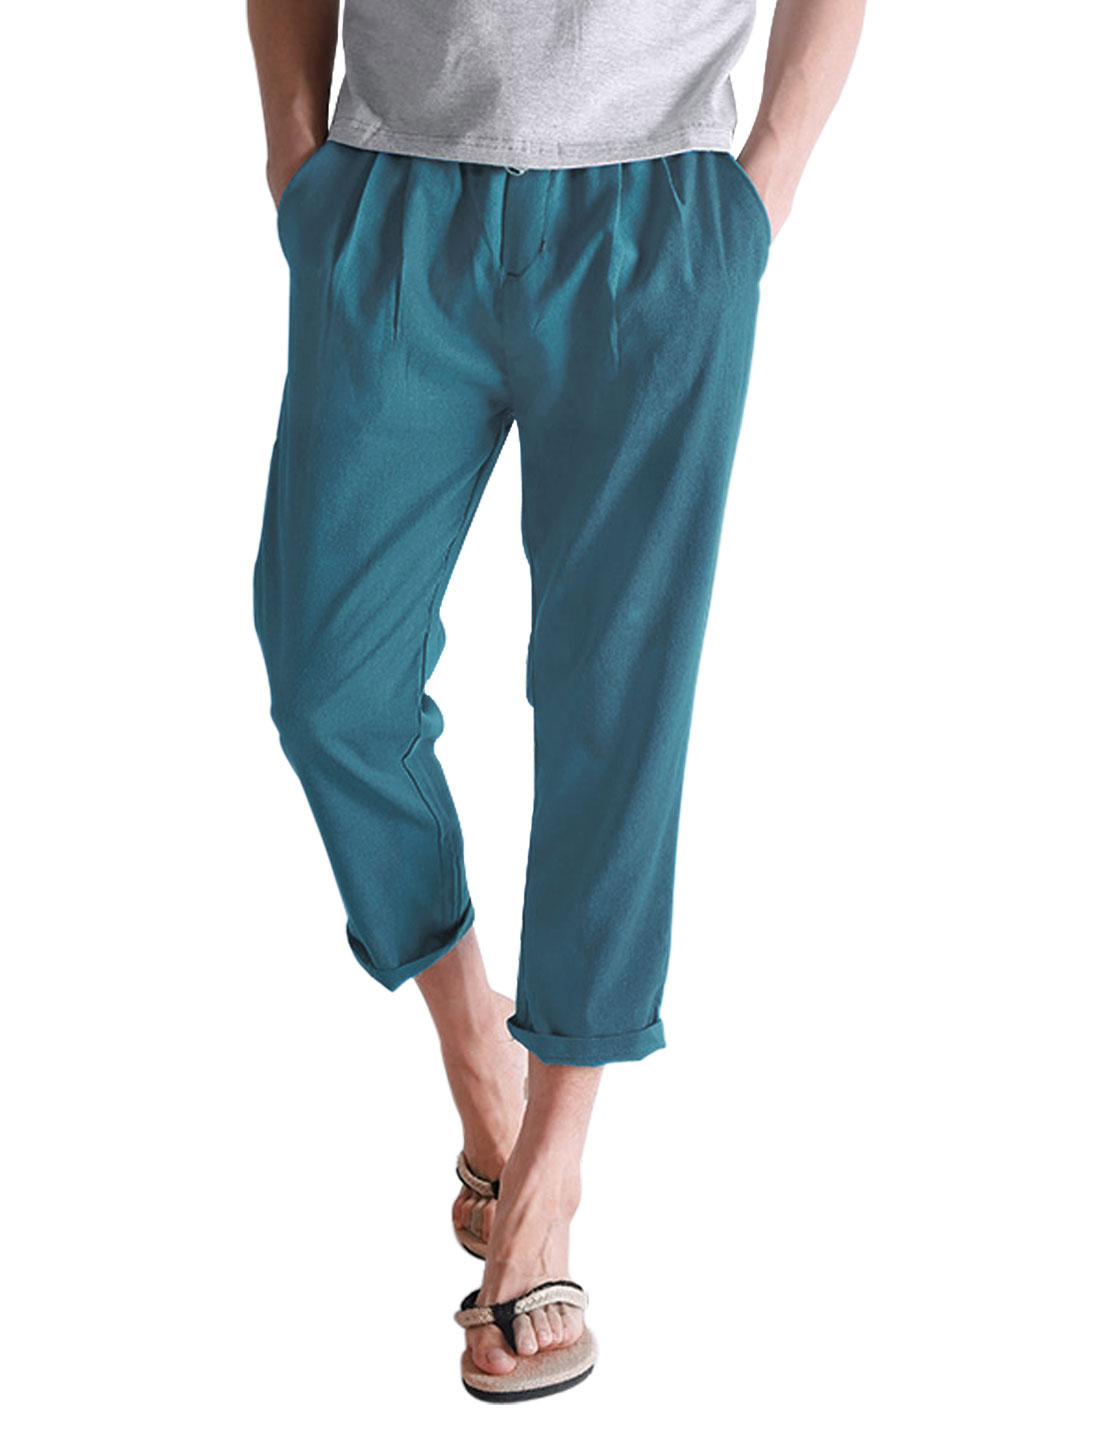 Men Elastic Drawstring Waist Linen Casual Cropped Pants Turquoise W30